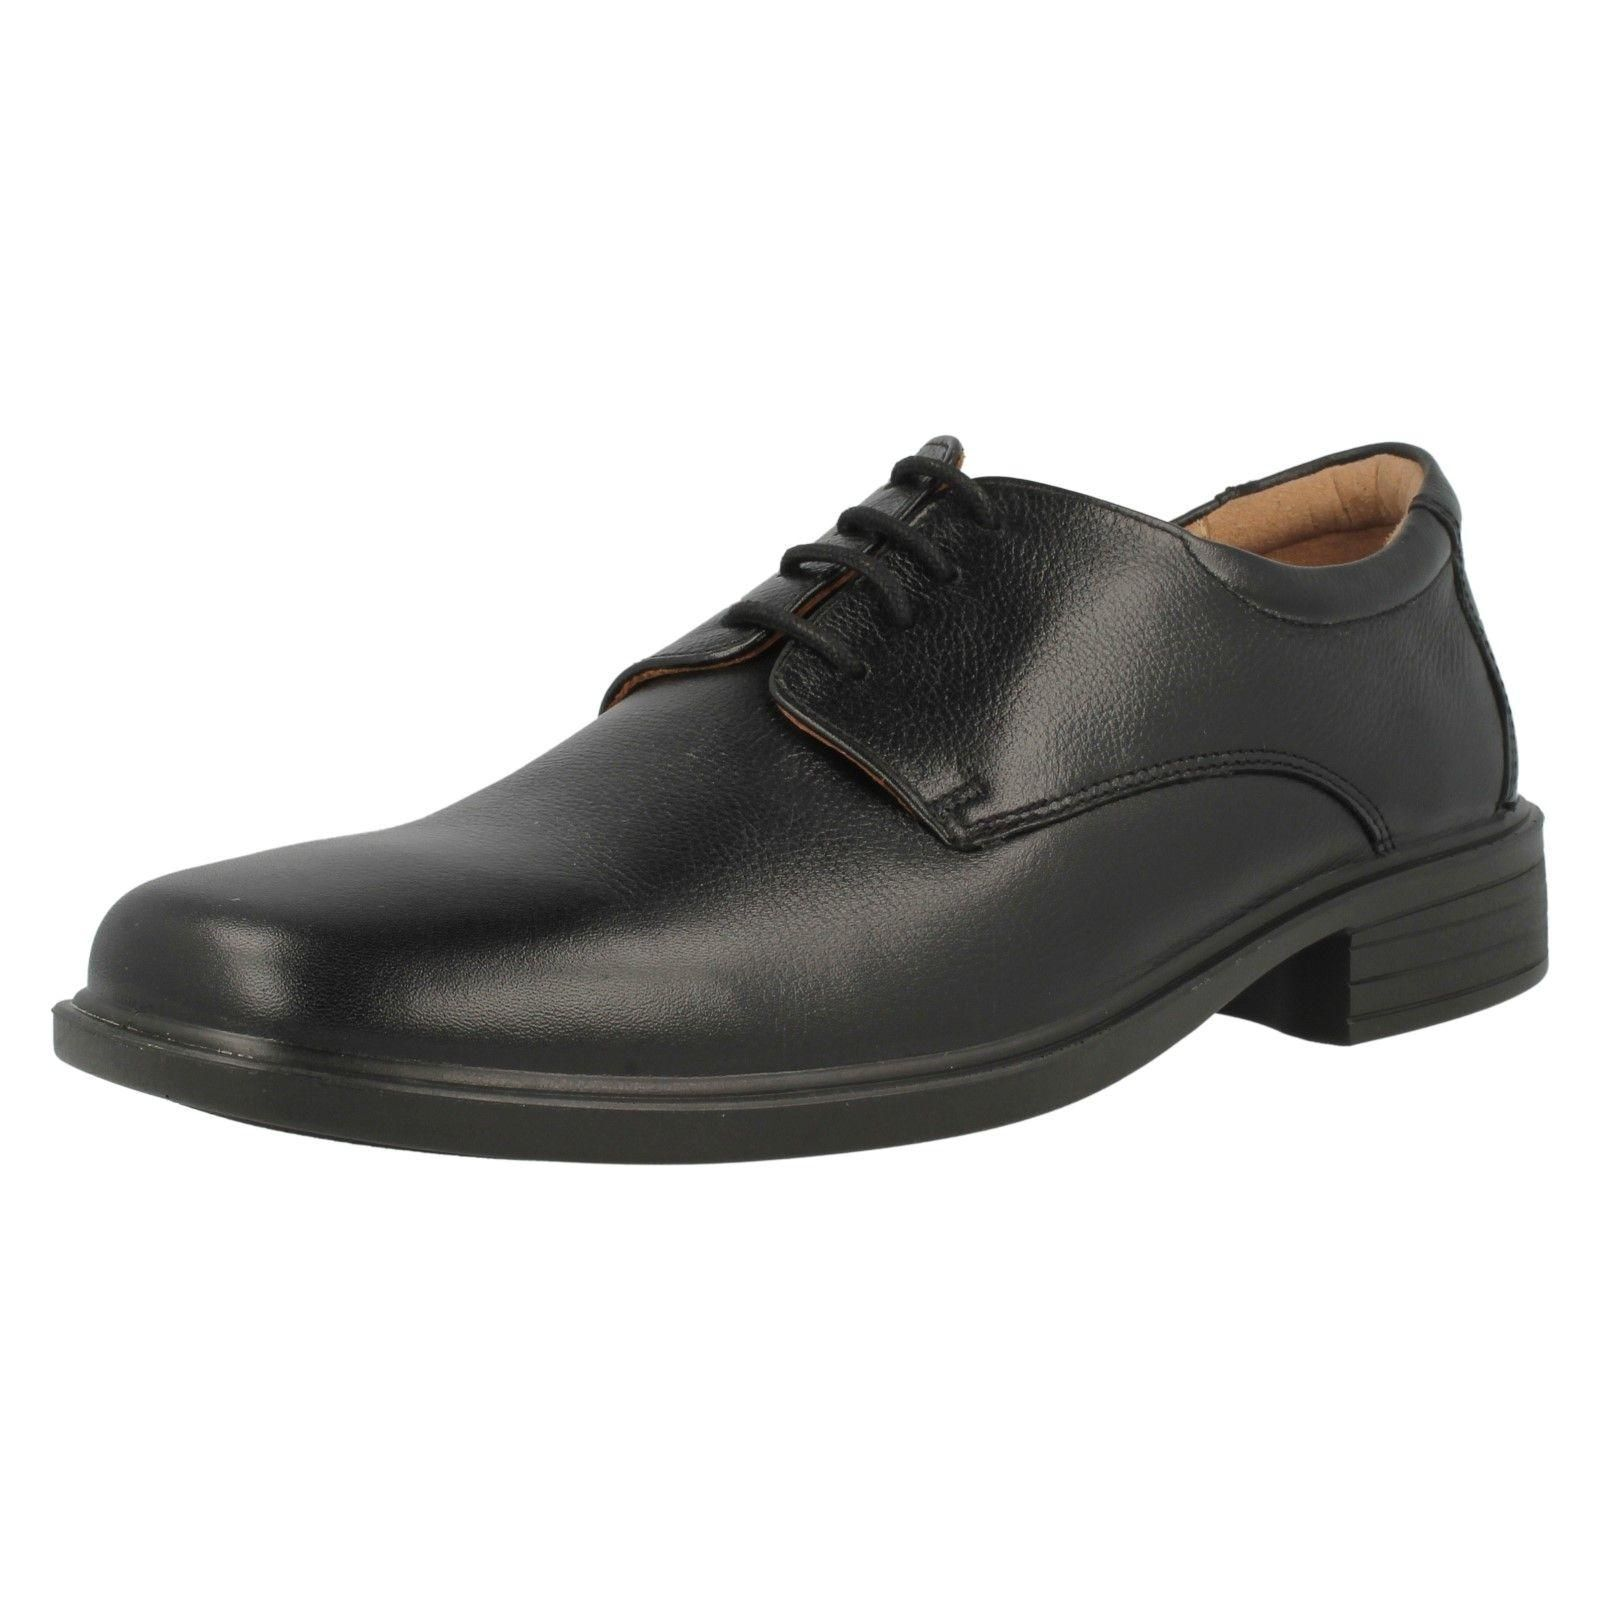 Uomo Padders Up Smart Lace Up Padders Schuhes Andrew a056e9